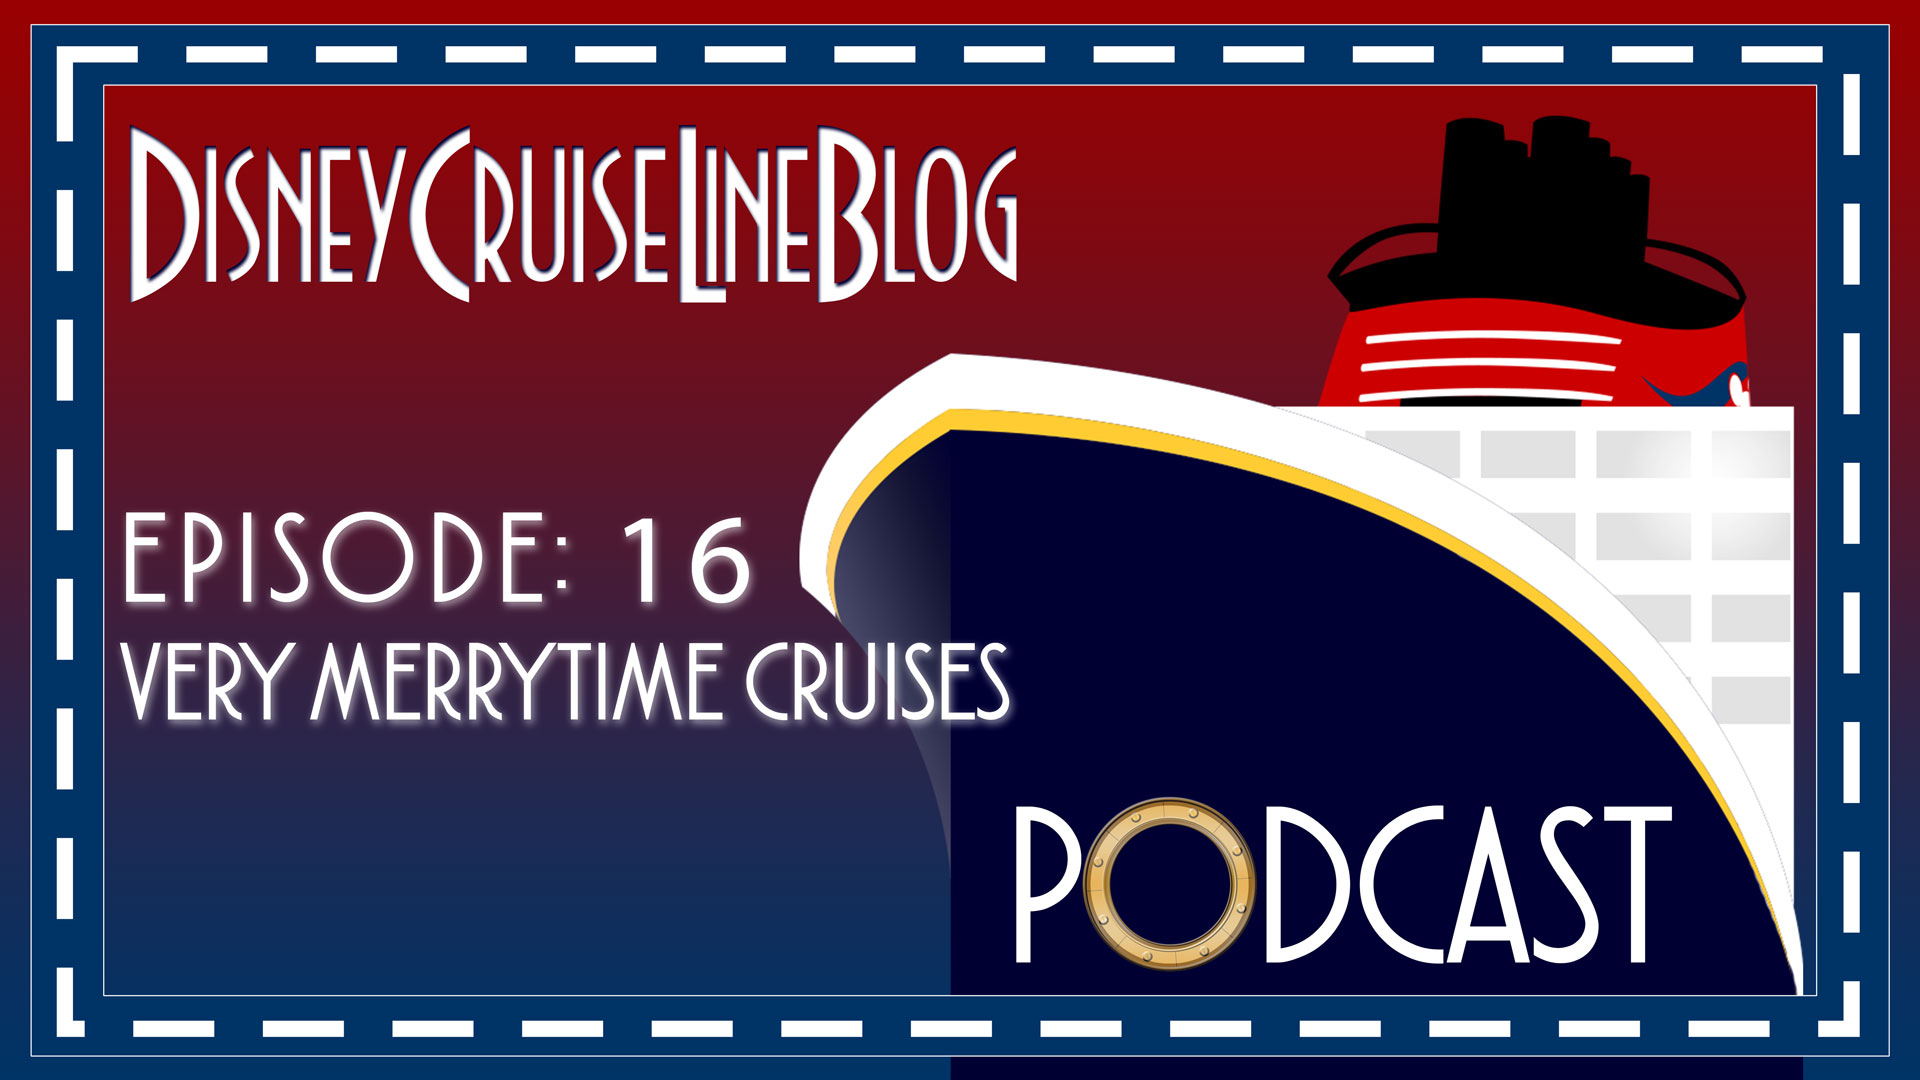 DCL Blog Podcast Episode 15 Very MerryTime